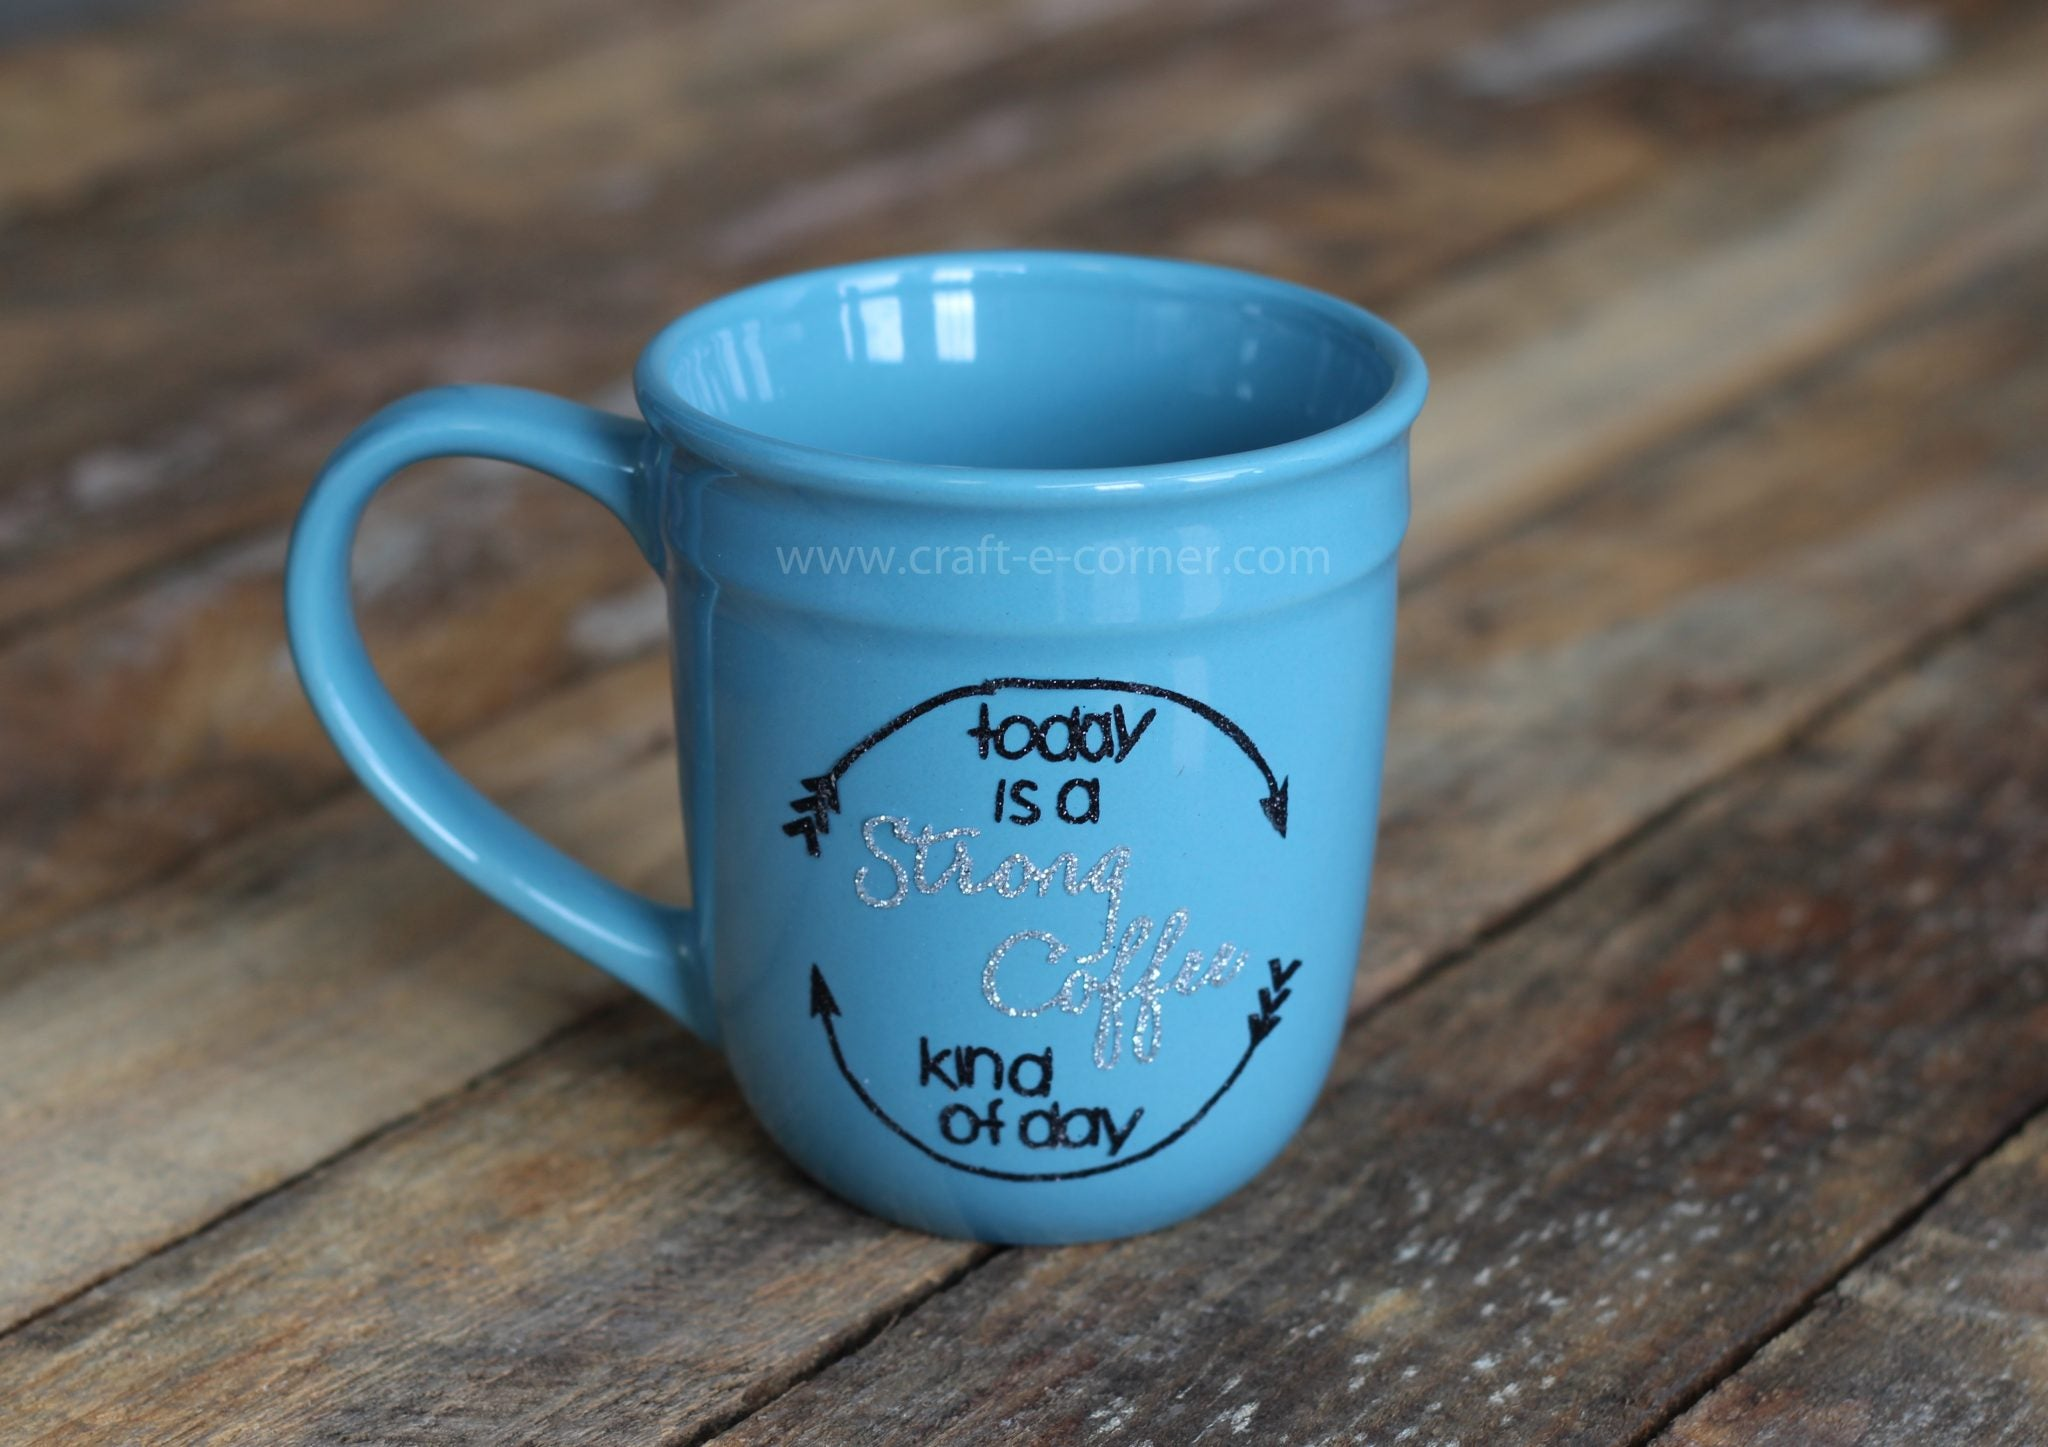 Personalized coffee cups make great gifts- find out how (and how not to) make your own.